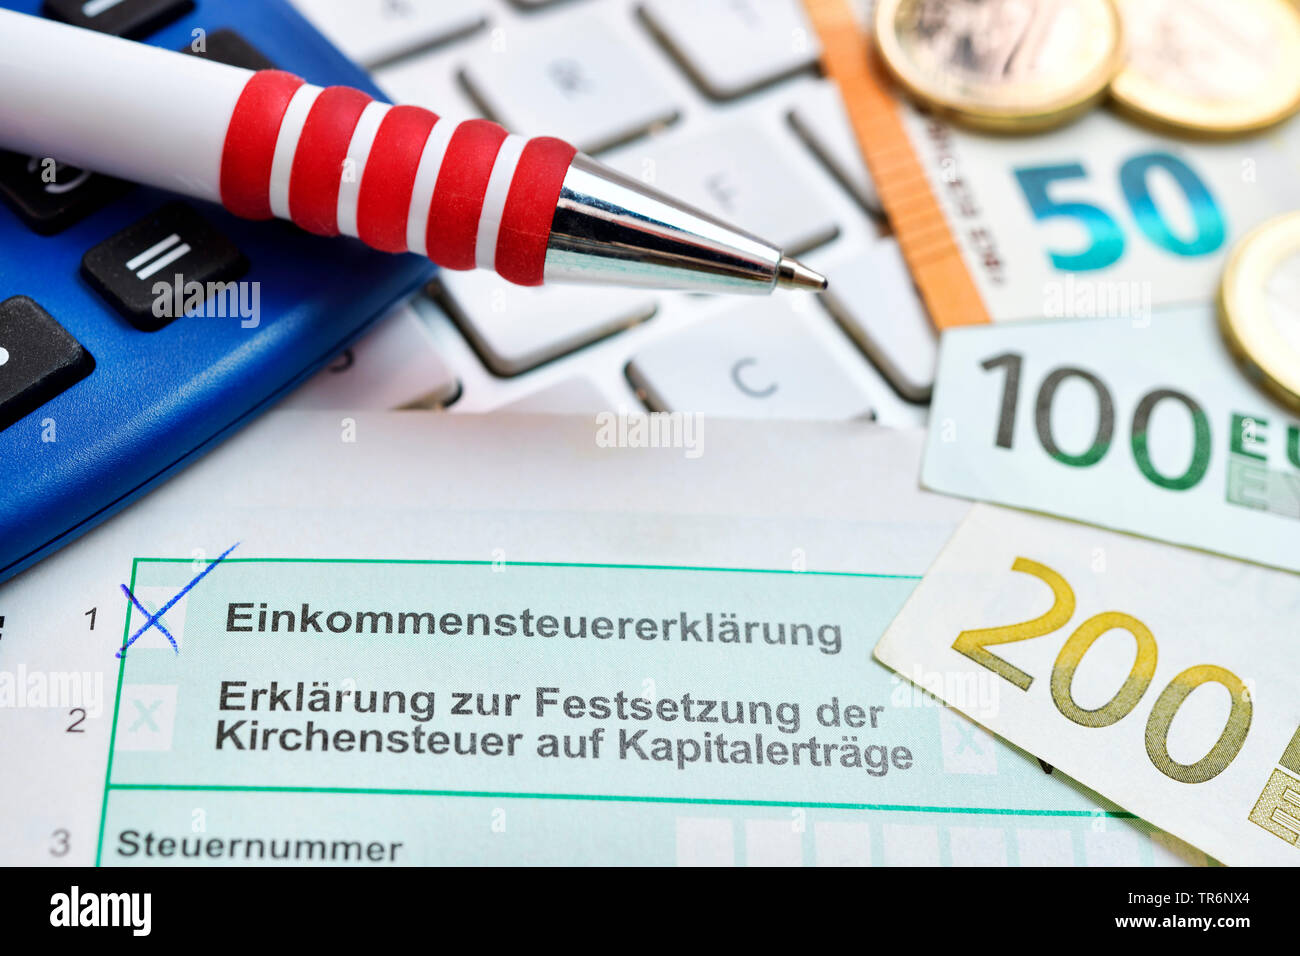 Photo symbole de revenus, Allemagne Photo Stock